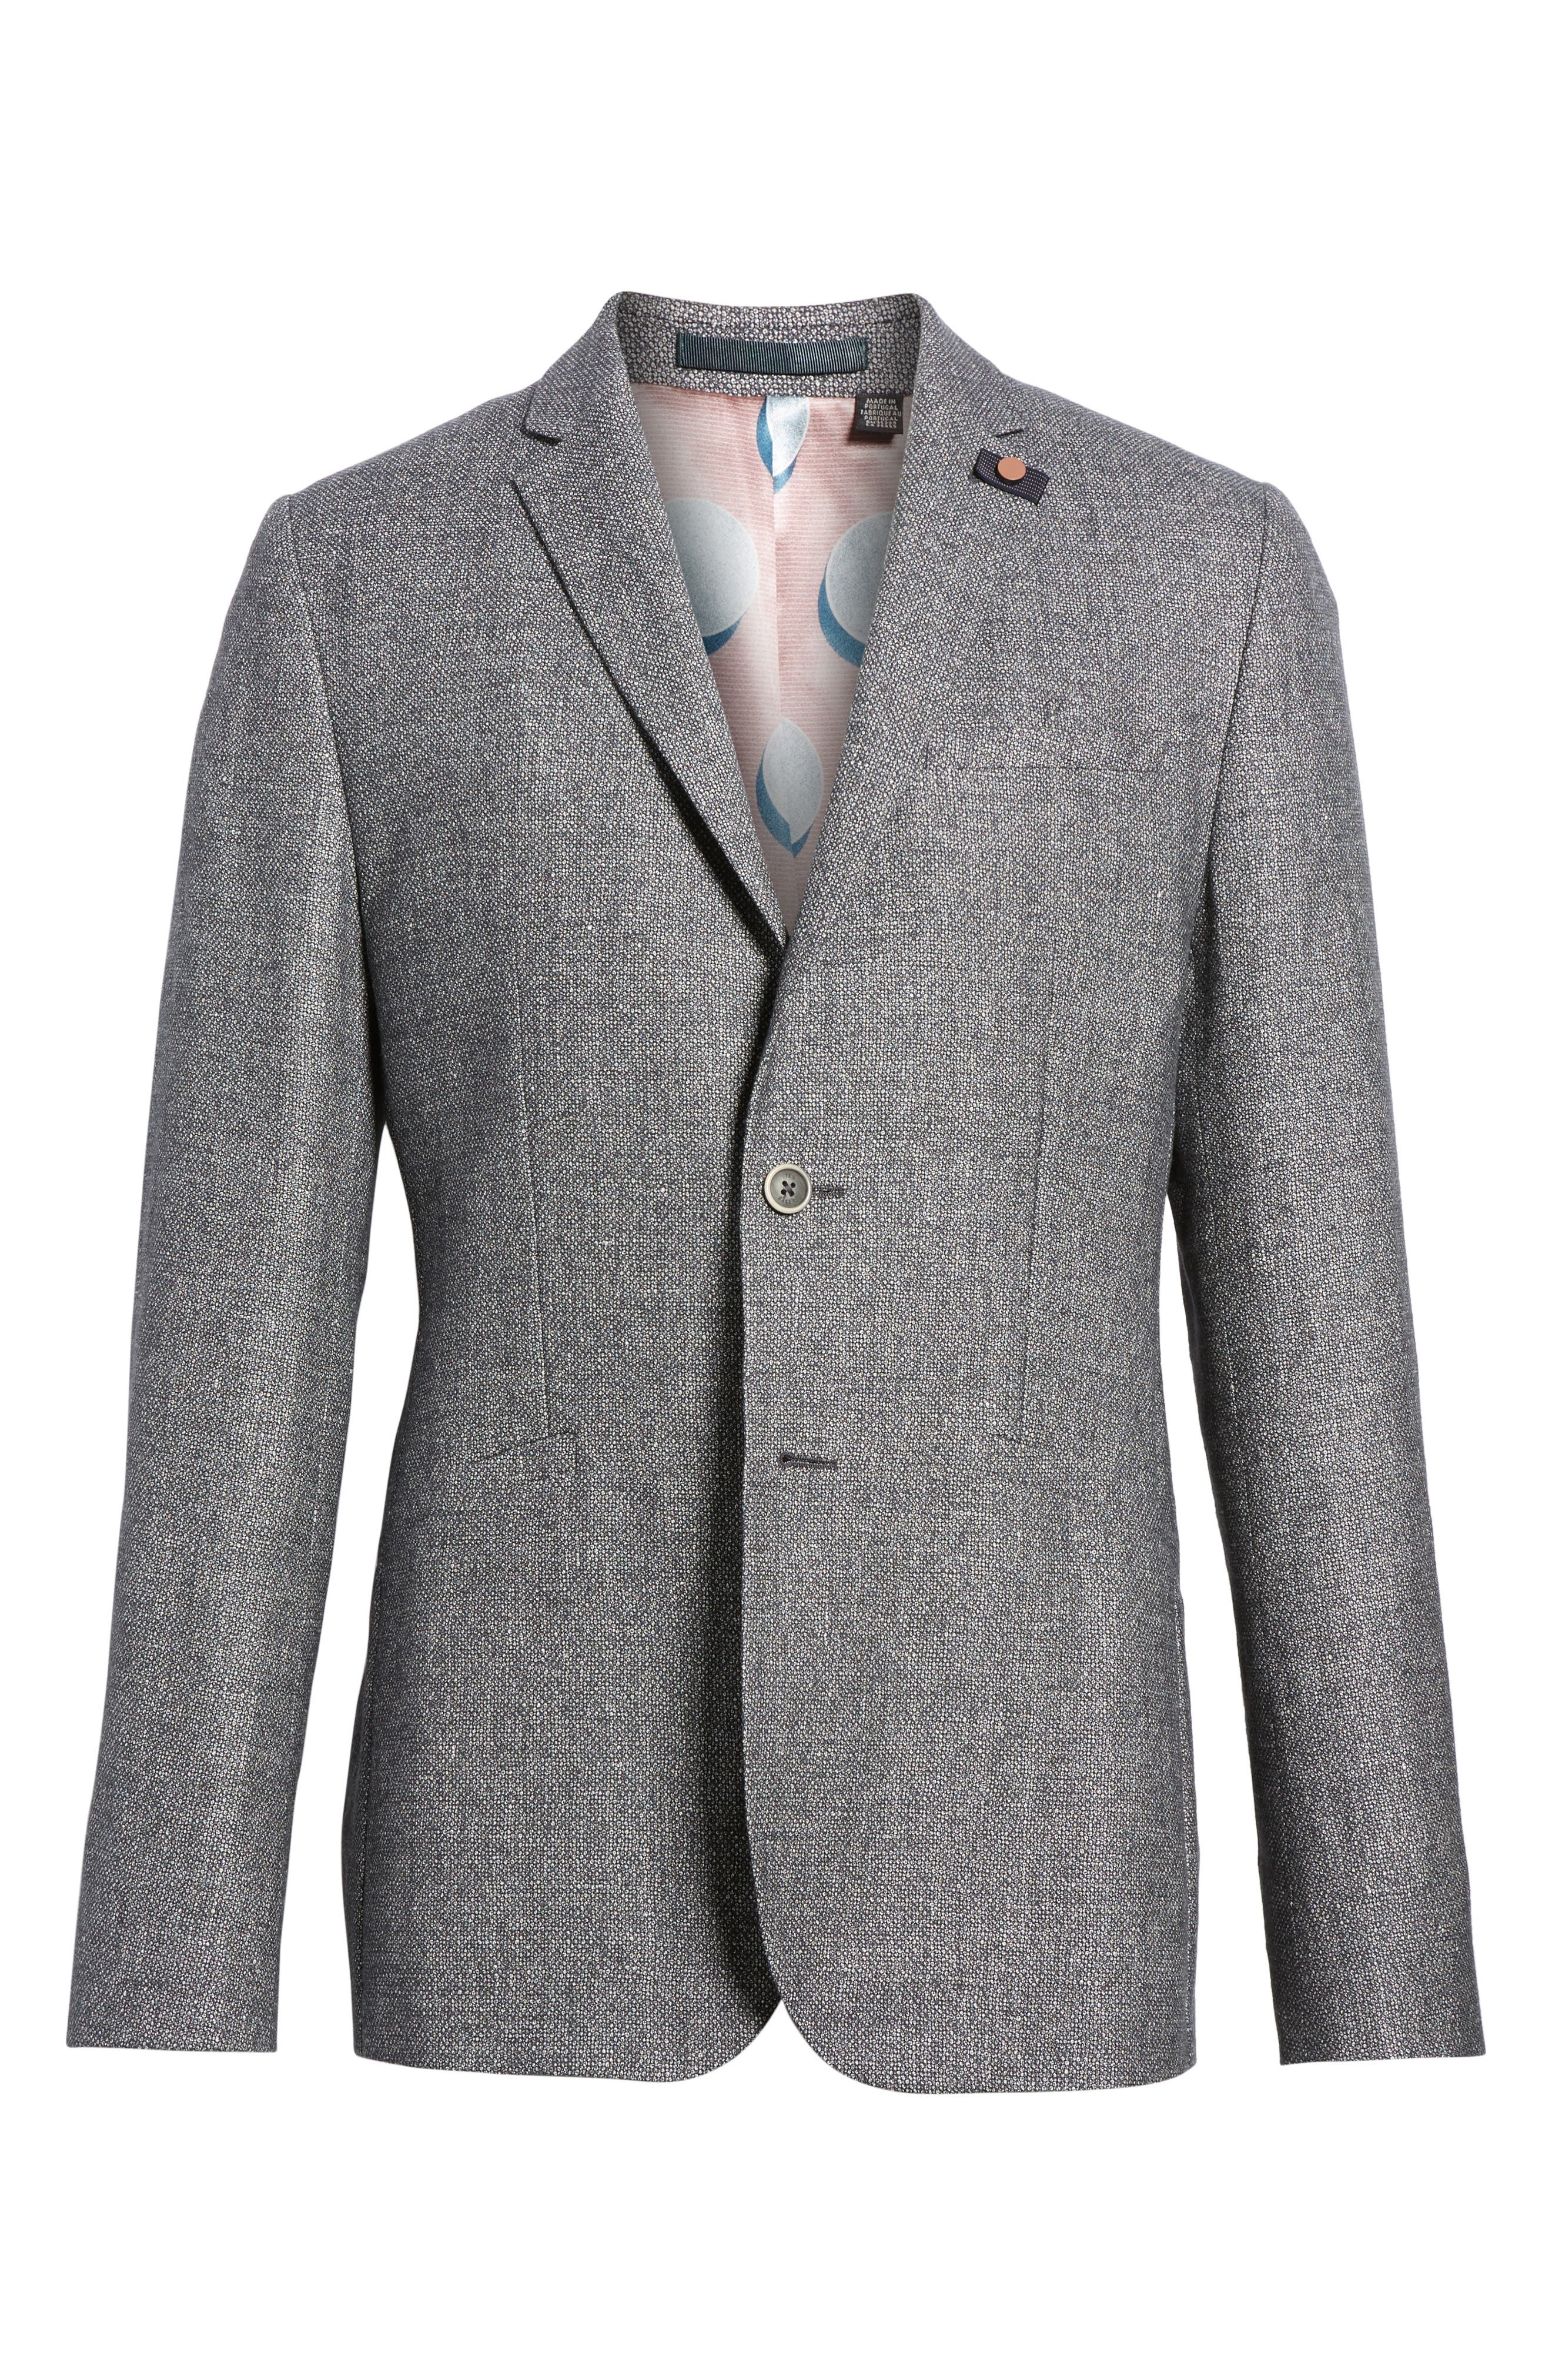 Milar Trim Fit Wool & Linen Sport Coat,                             Alternate thumbnail 6, color,                             Charcoal